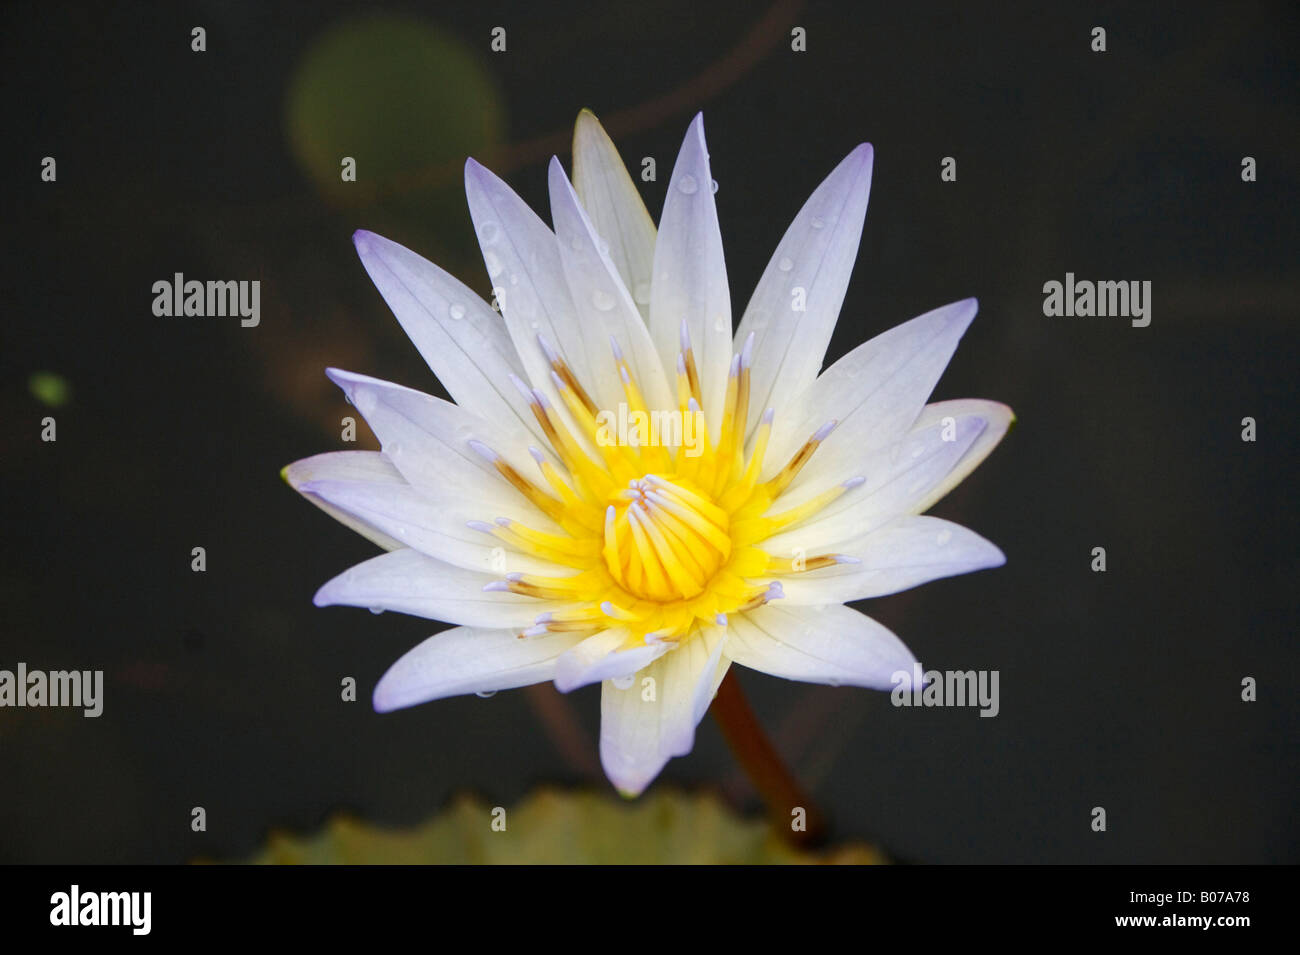 Lotus flower stock photos lotus flower stock images alamy a lotus flower in a large ceramic pot at the entrance to jiangshan park opposite the izmirmasajfo Images